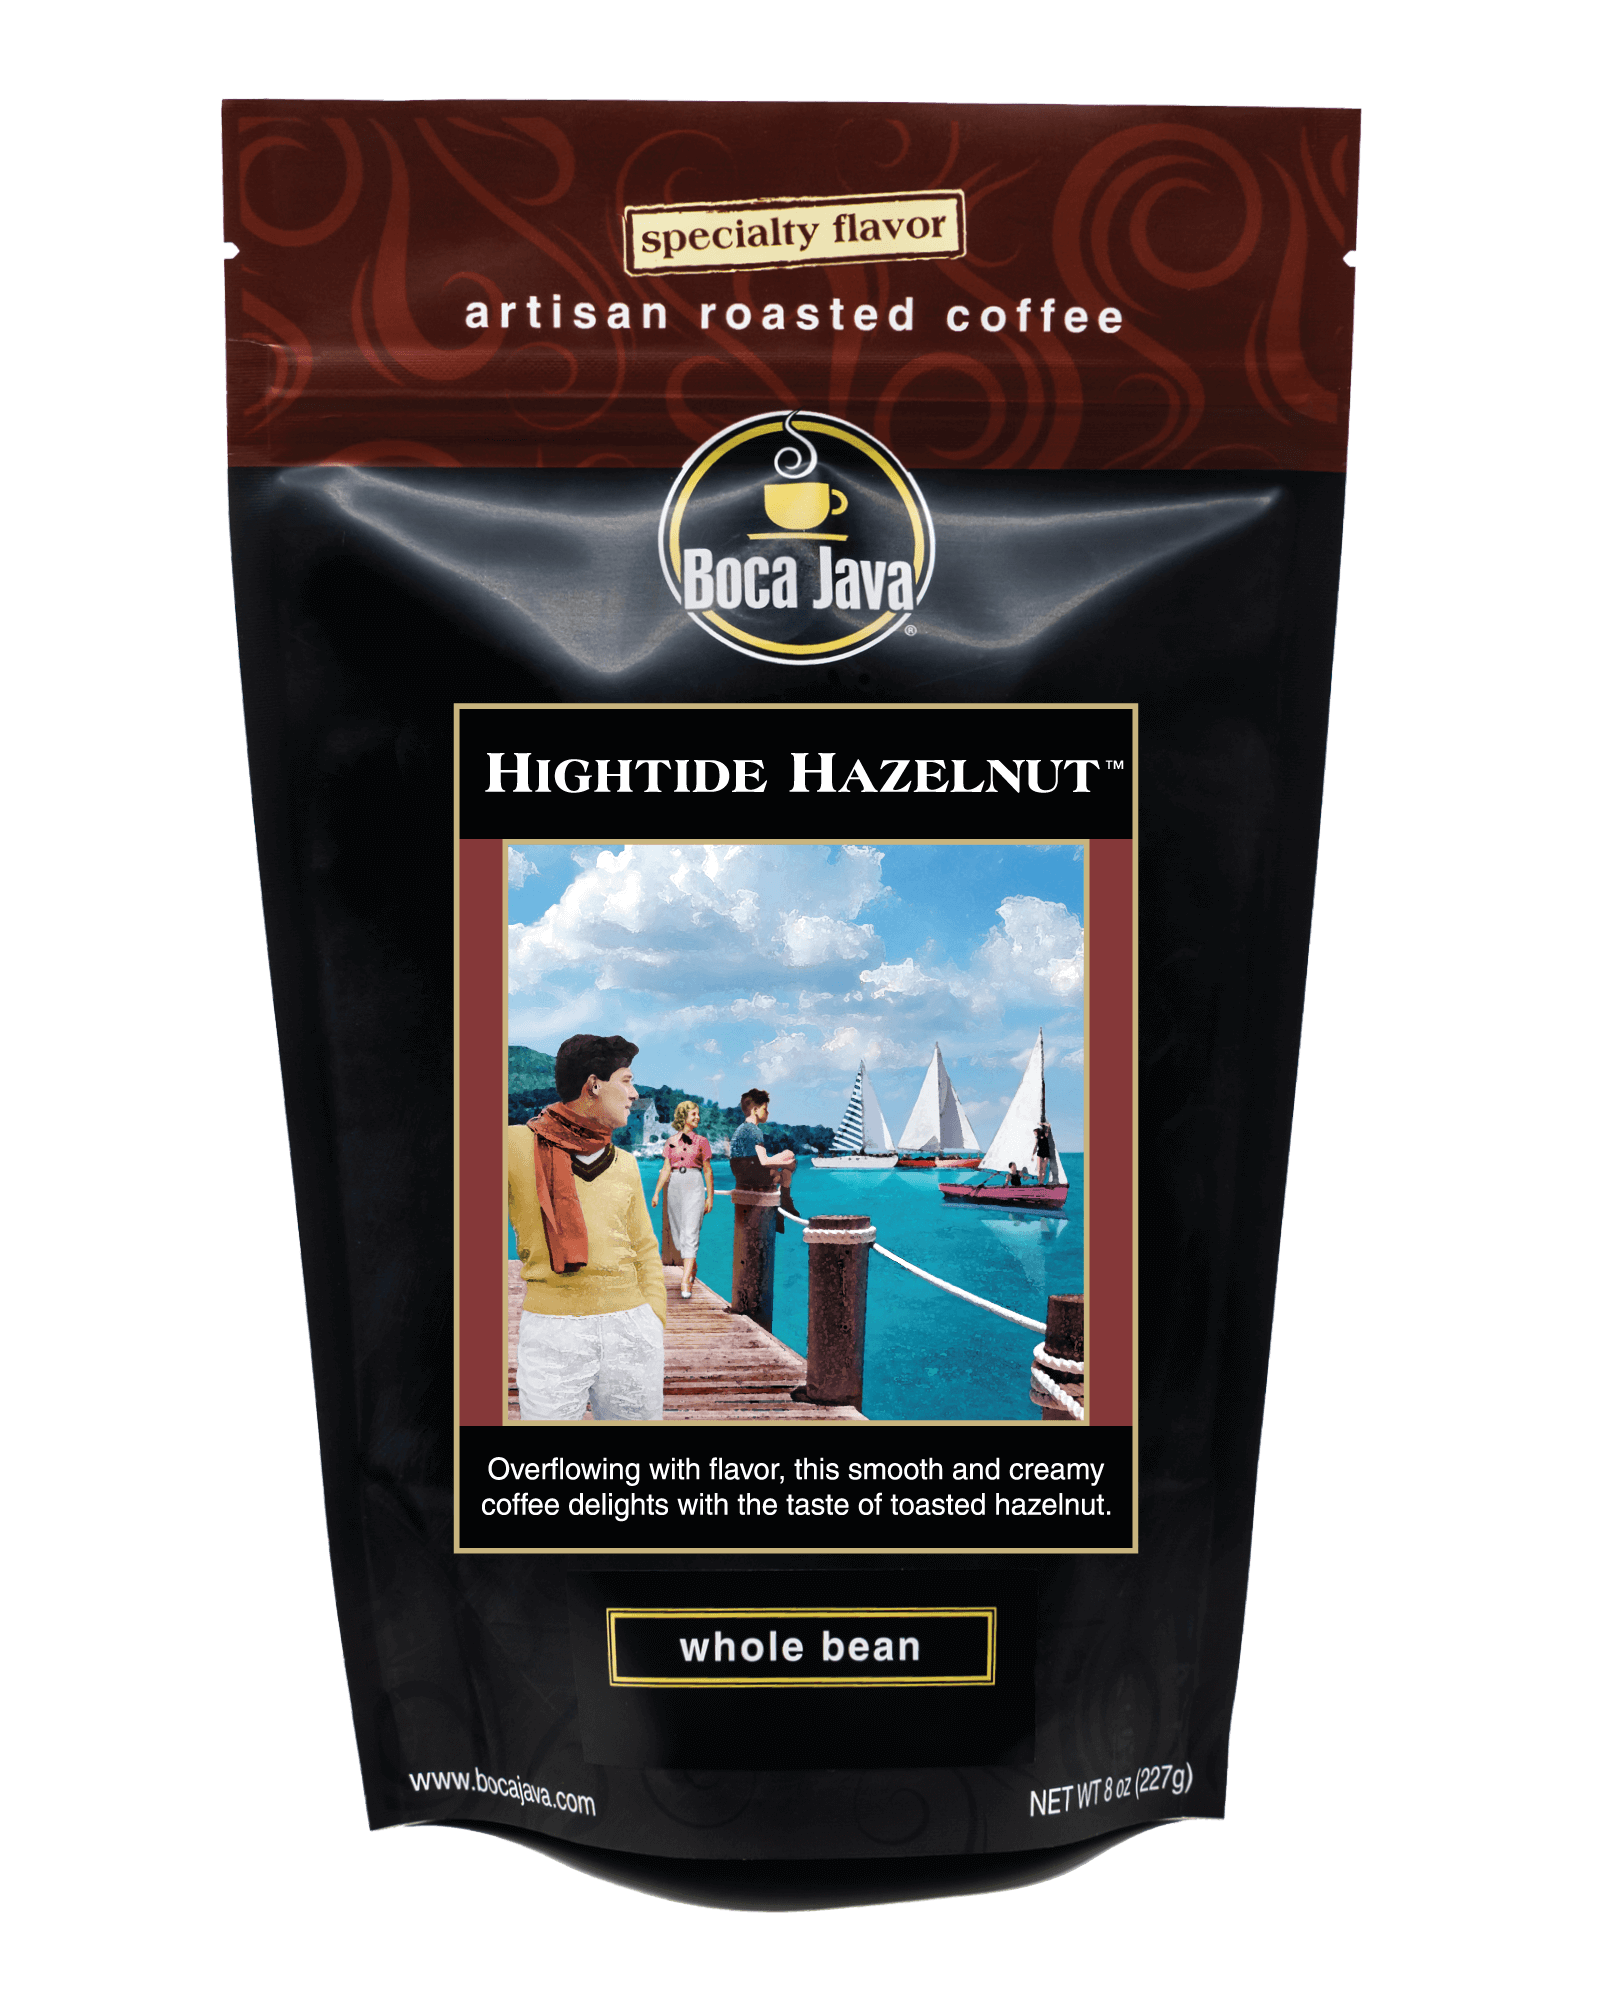 Hightide Hazelnut